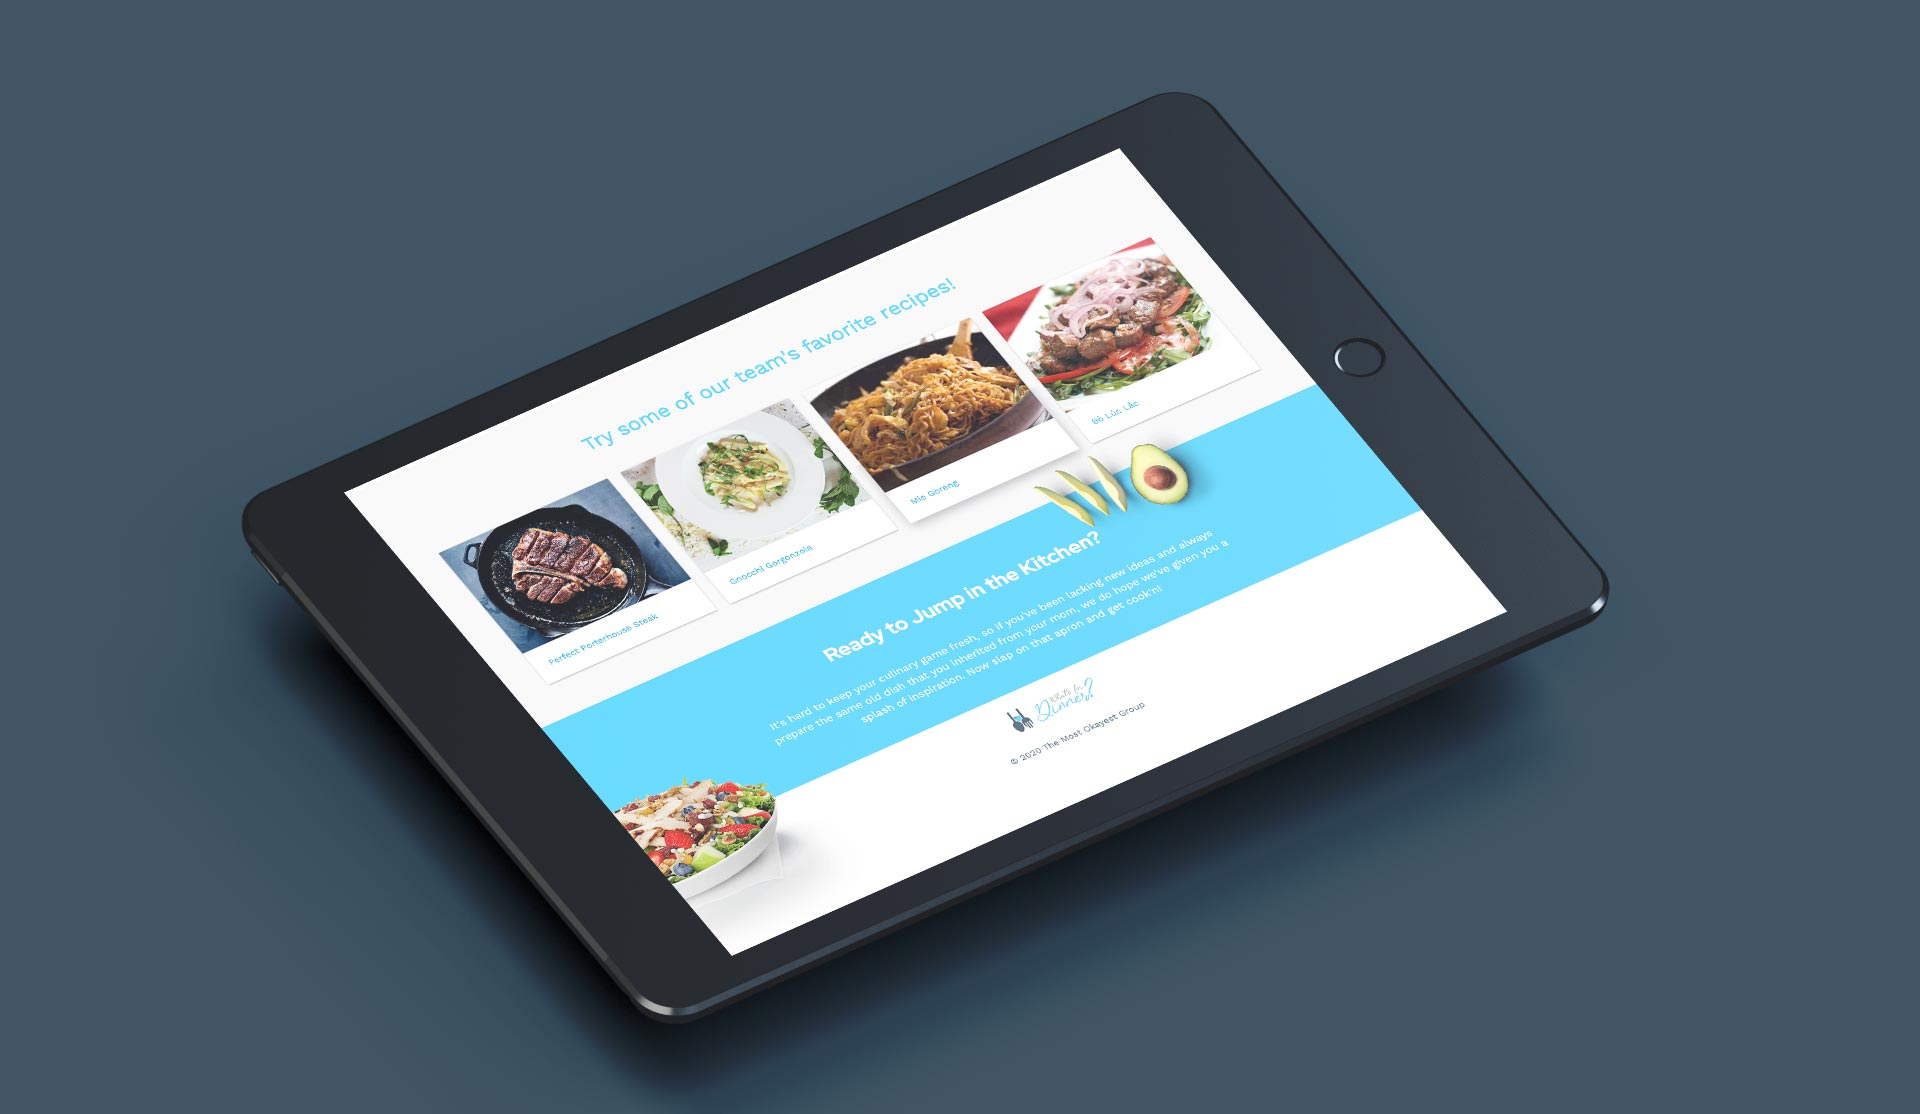 whats-for-dinner-iPad-mockup